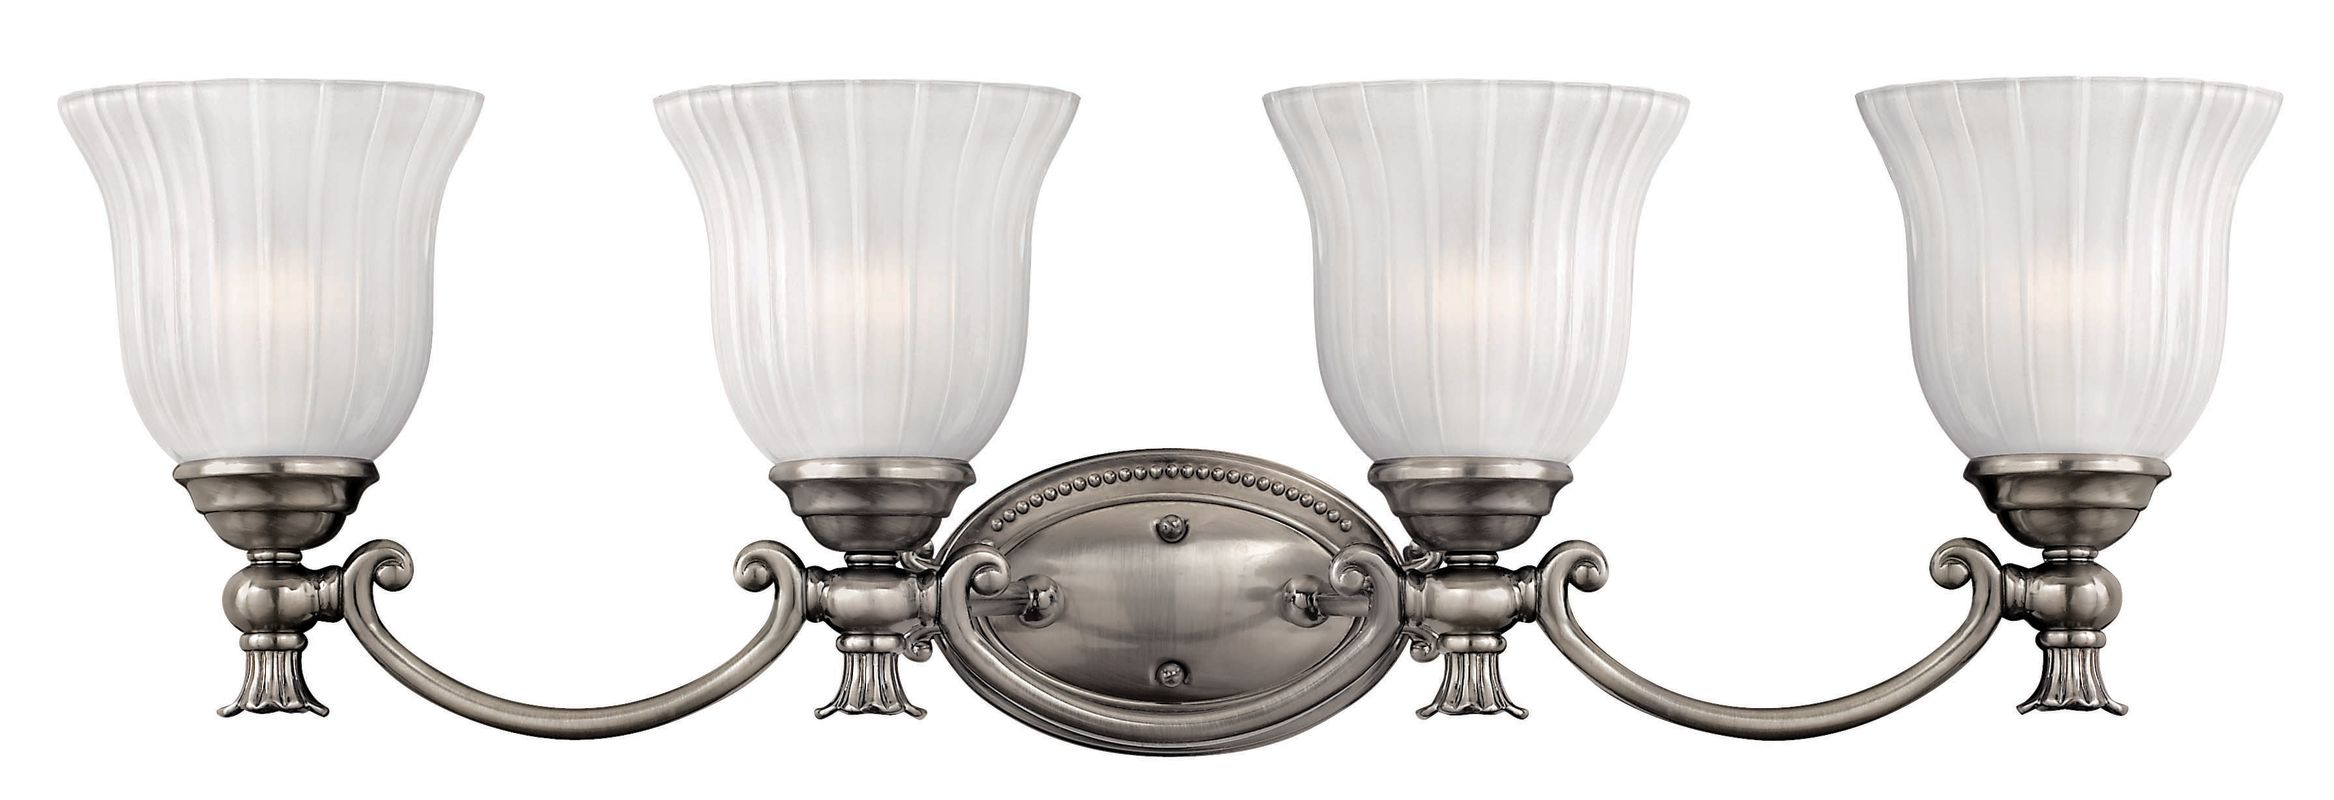 Talista 4 Light Antique Bronze Bath Vanity Light With: Hinkley Lighting 5584PL Polished Antique Nickel 4 Light 30